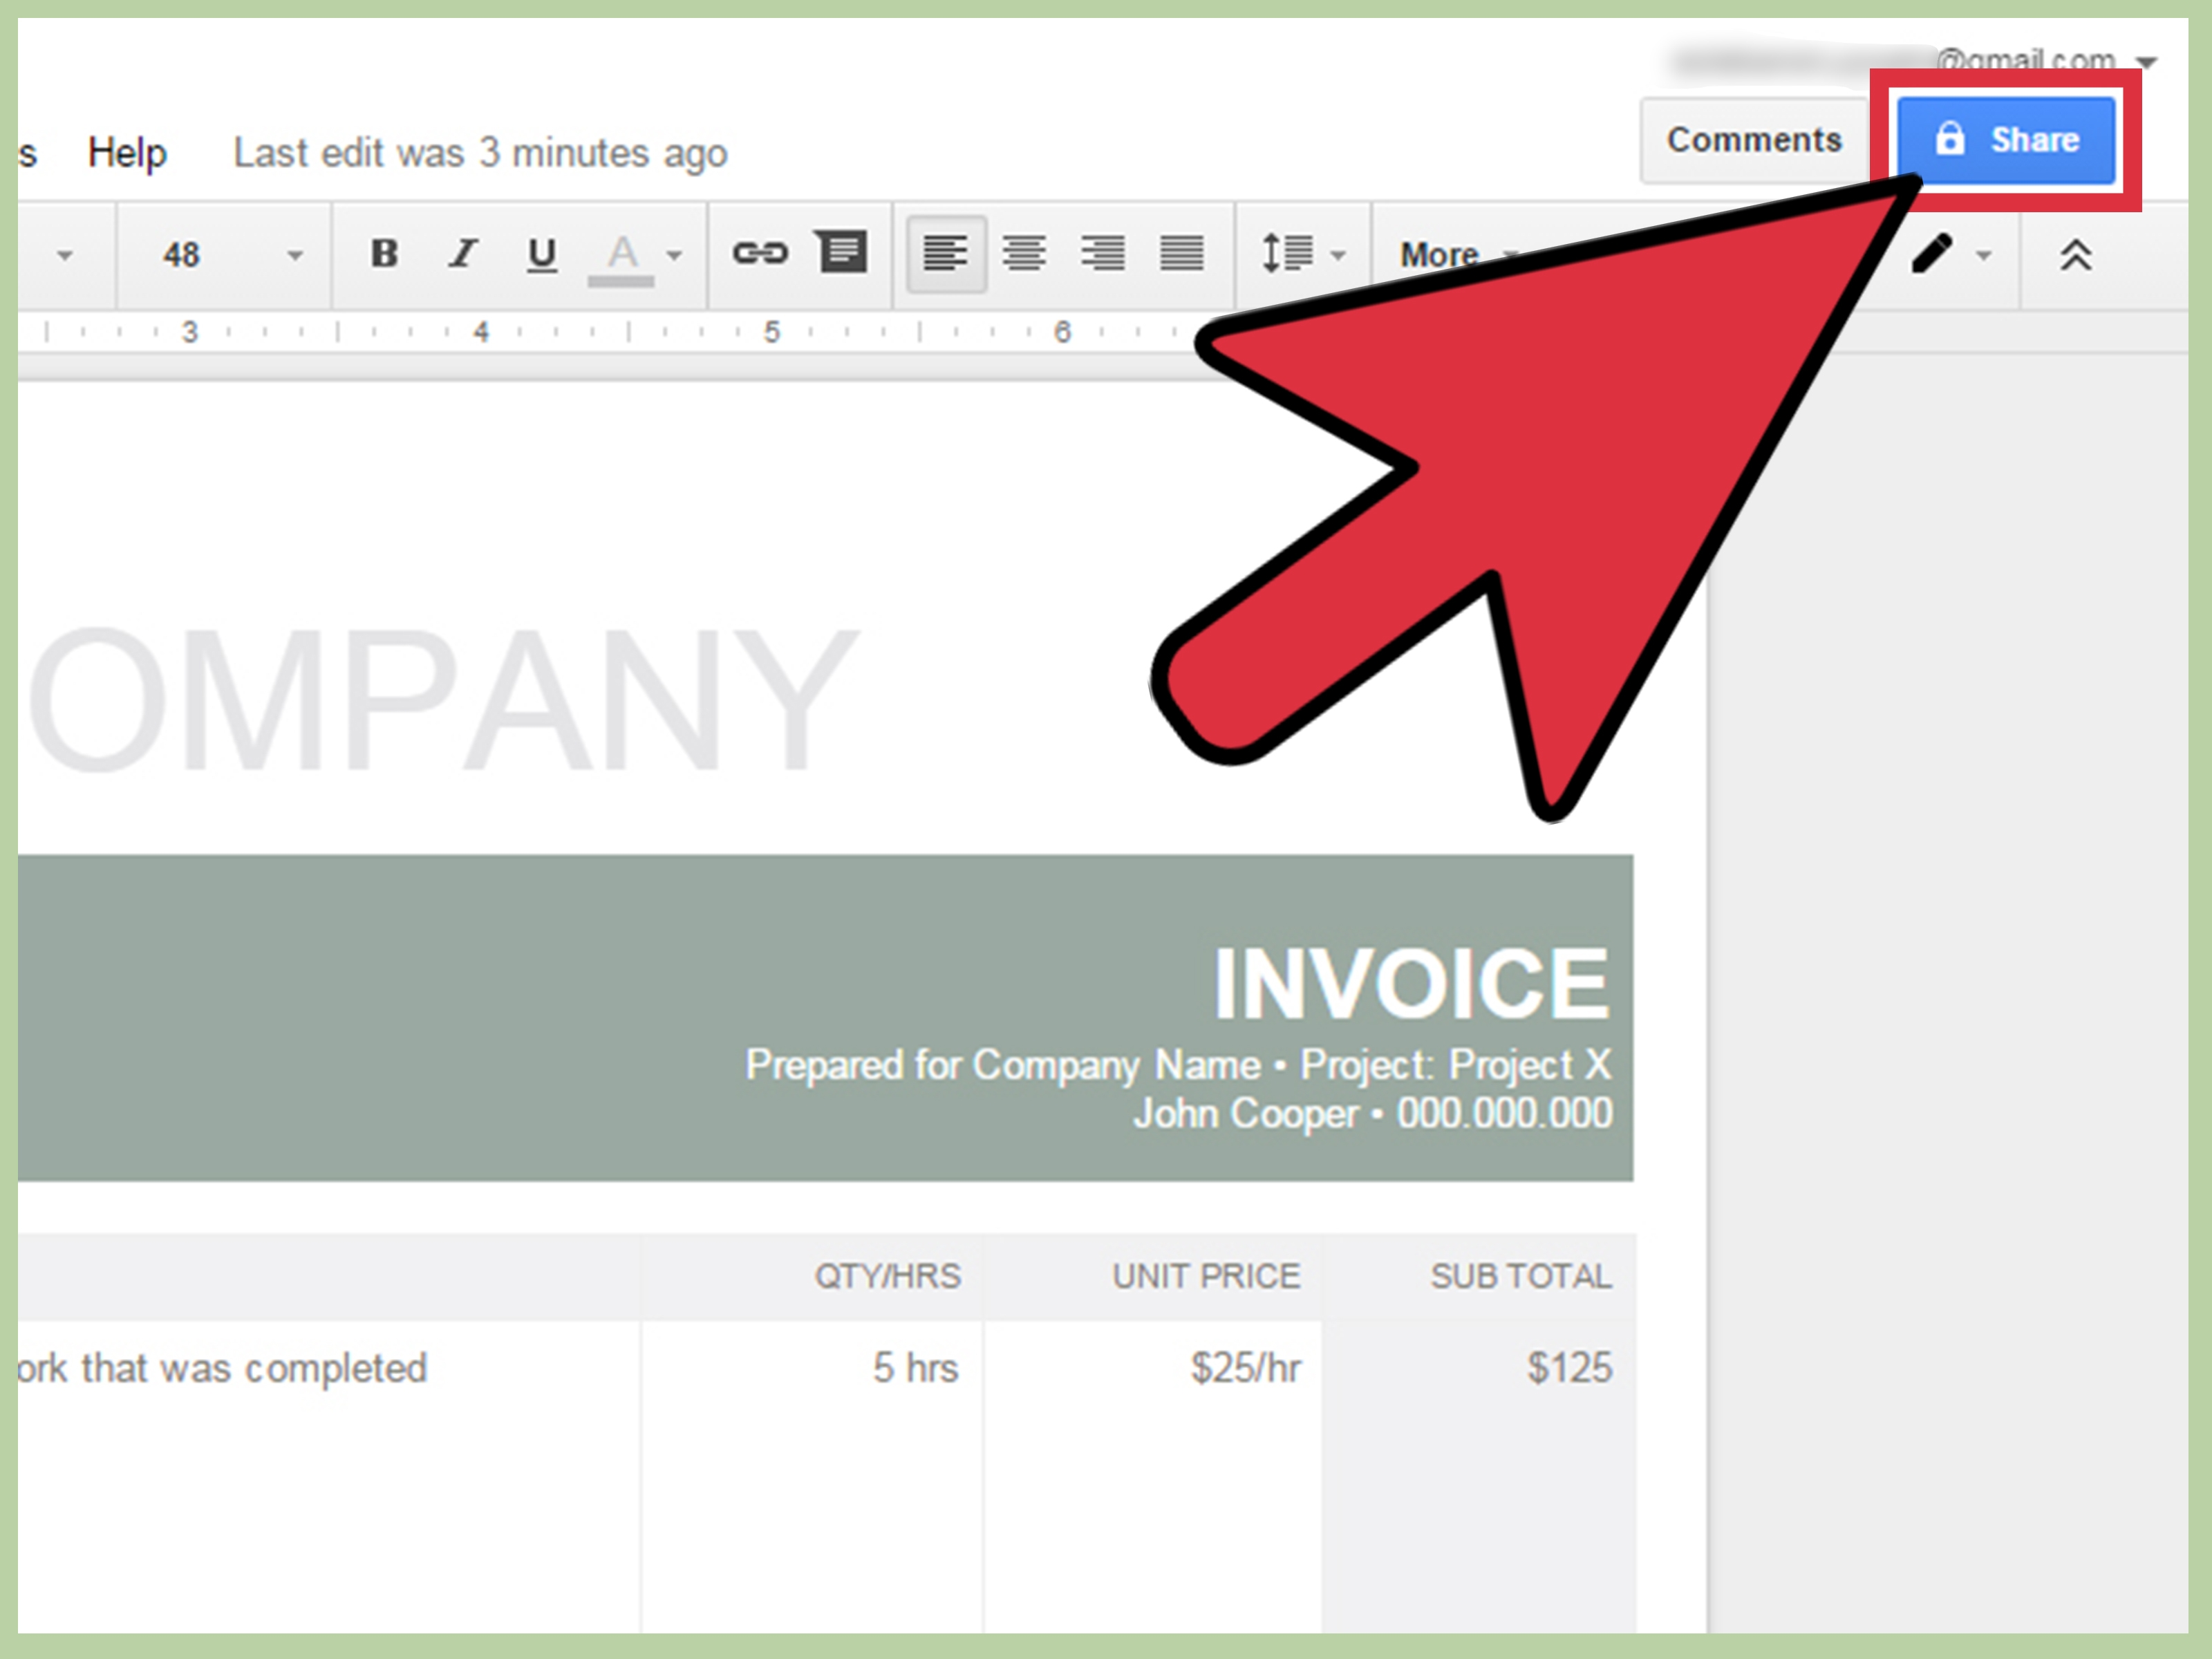 Aos Fee Payment Receipt Excel Make Your Own Invoices  Invoice Template Ideas How To Create A Invoice In Excel with Charity Donation Receipt Create Your Own Invoices Excel Based Consulting Invoice Template Make Your  Own Invoices  Make Receipts Online Excel